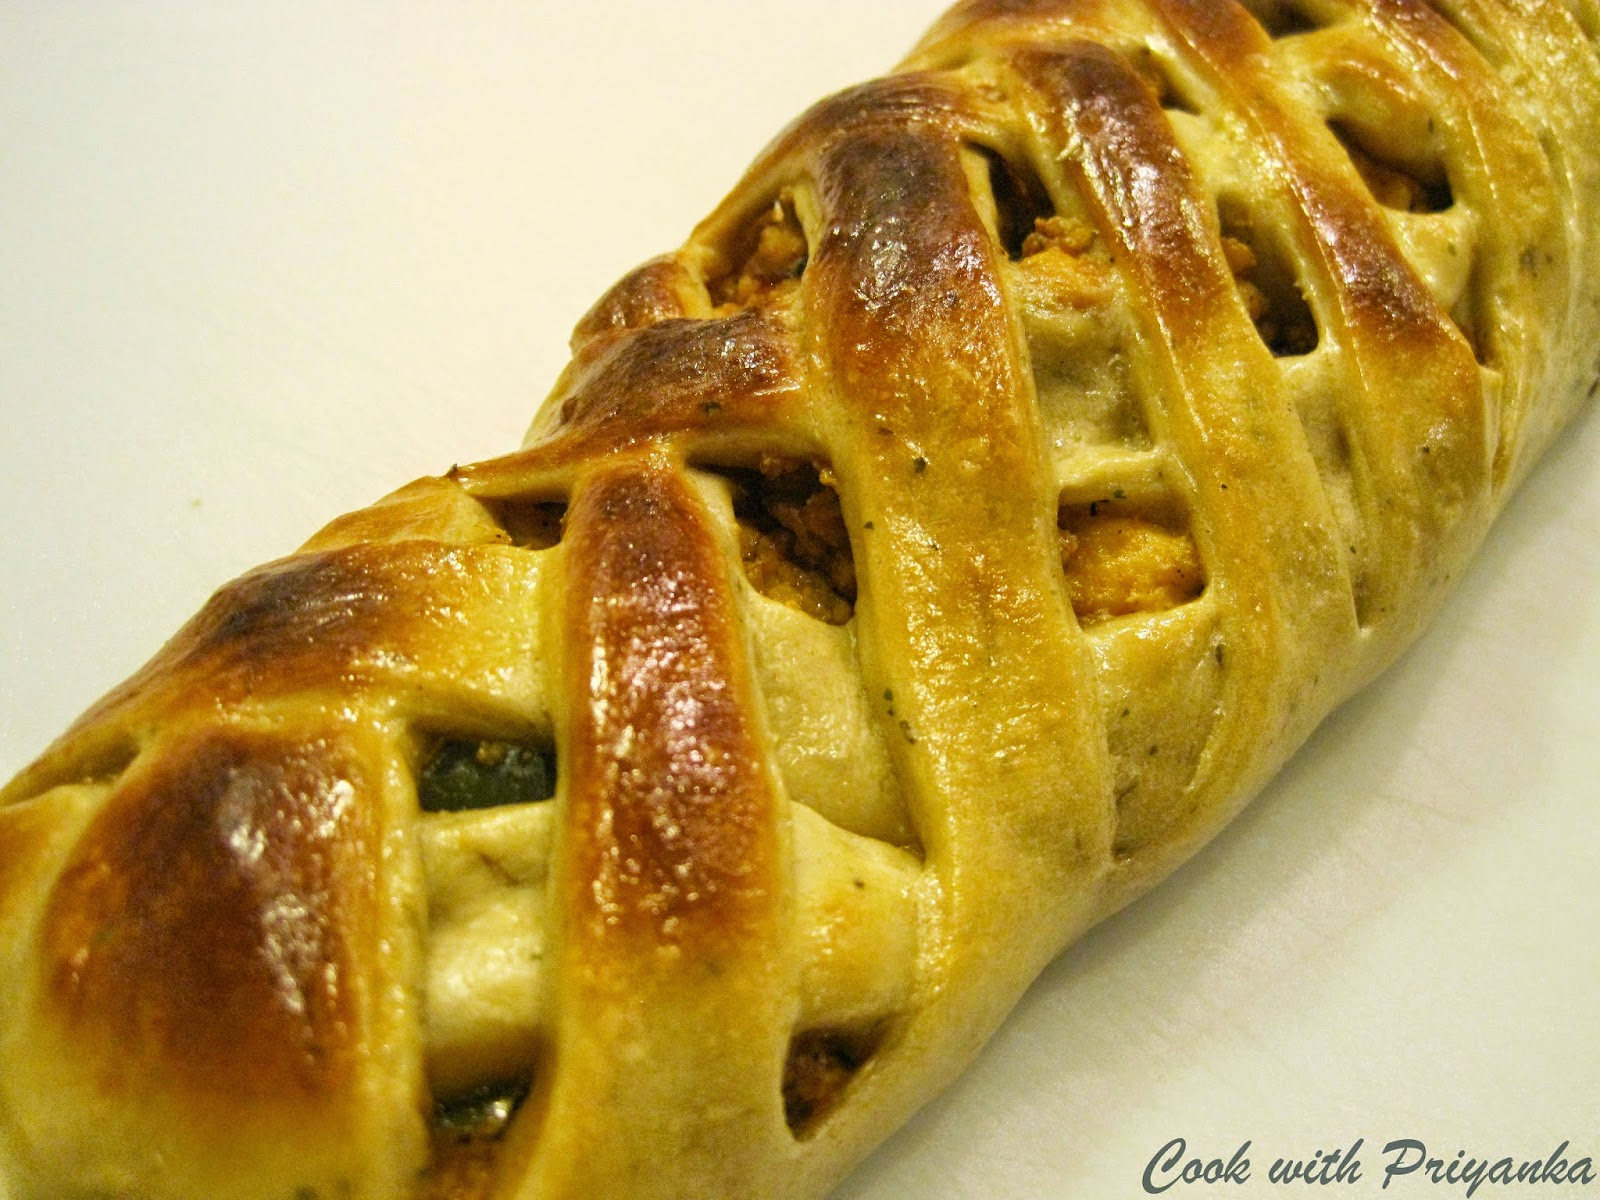 http://cookwithpriyankavarma.blogspot.co.uk/2014/06/braided-bread-stuffed-with-paneer.html